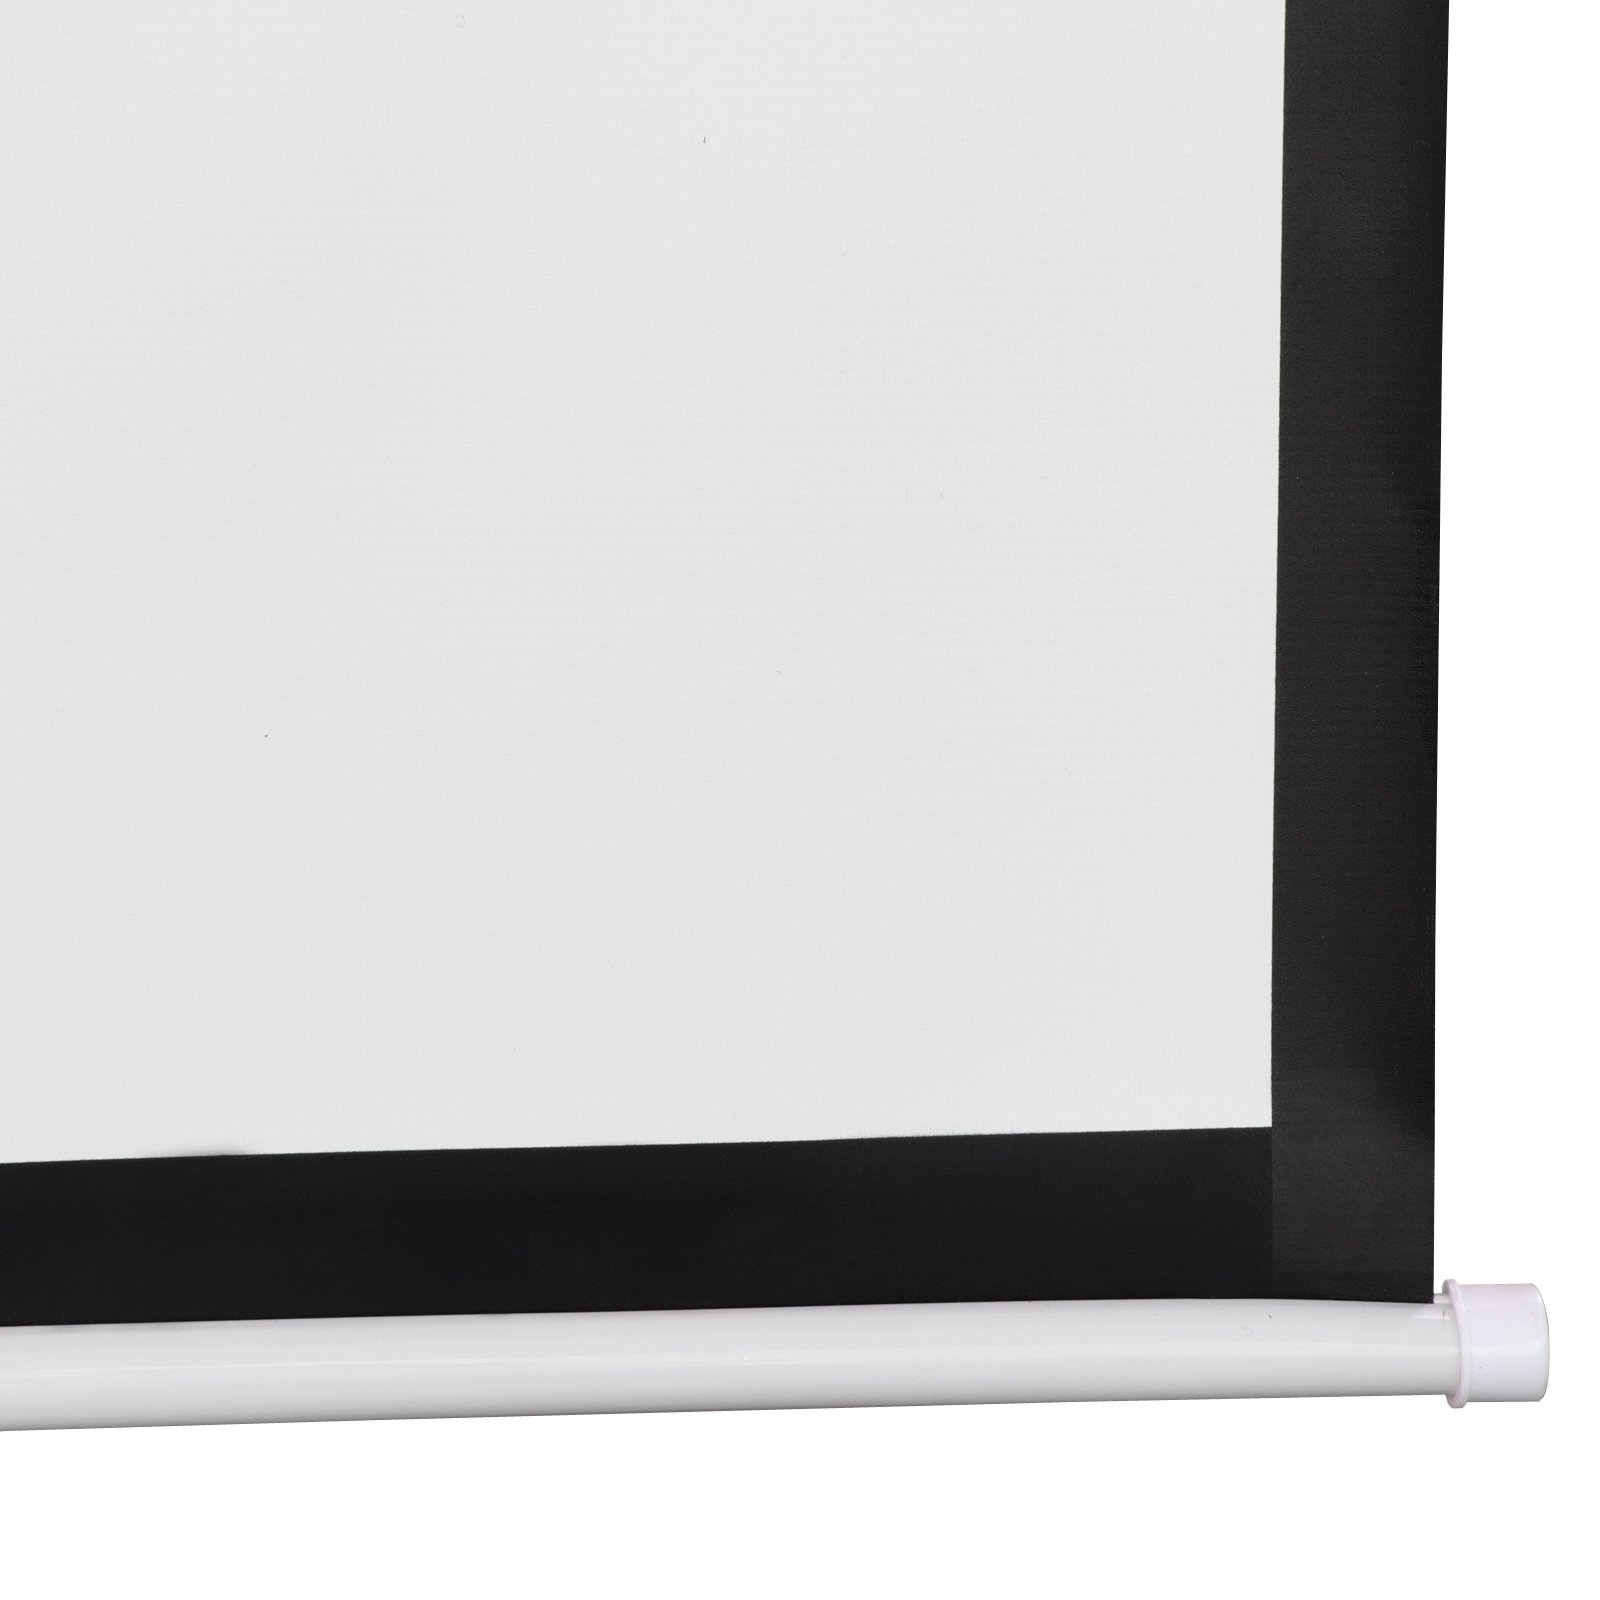 SUPER DEAL 120'' Projector Screen Projection Screen Manual Pull Down HD Screen 1:1 Format for Home Cinema Theater Presentation Education Outdoor Indoor Public Display by SUPER DEAL (Image #5)